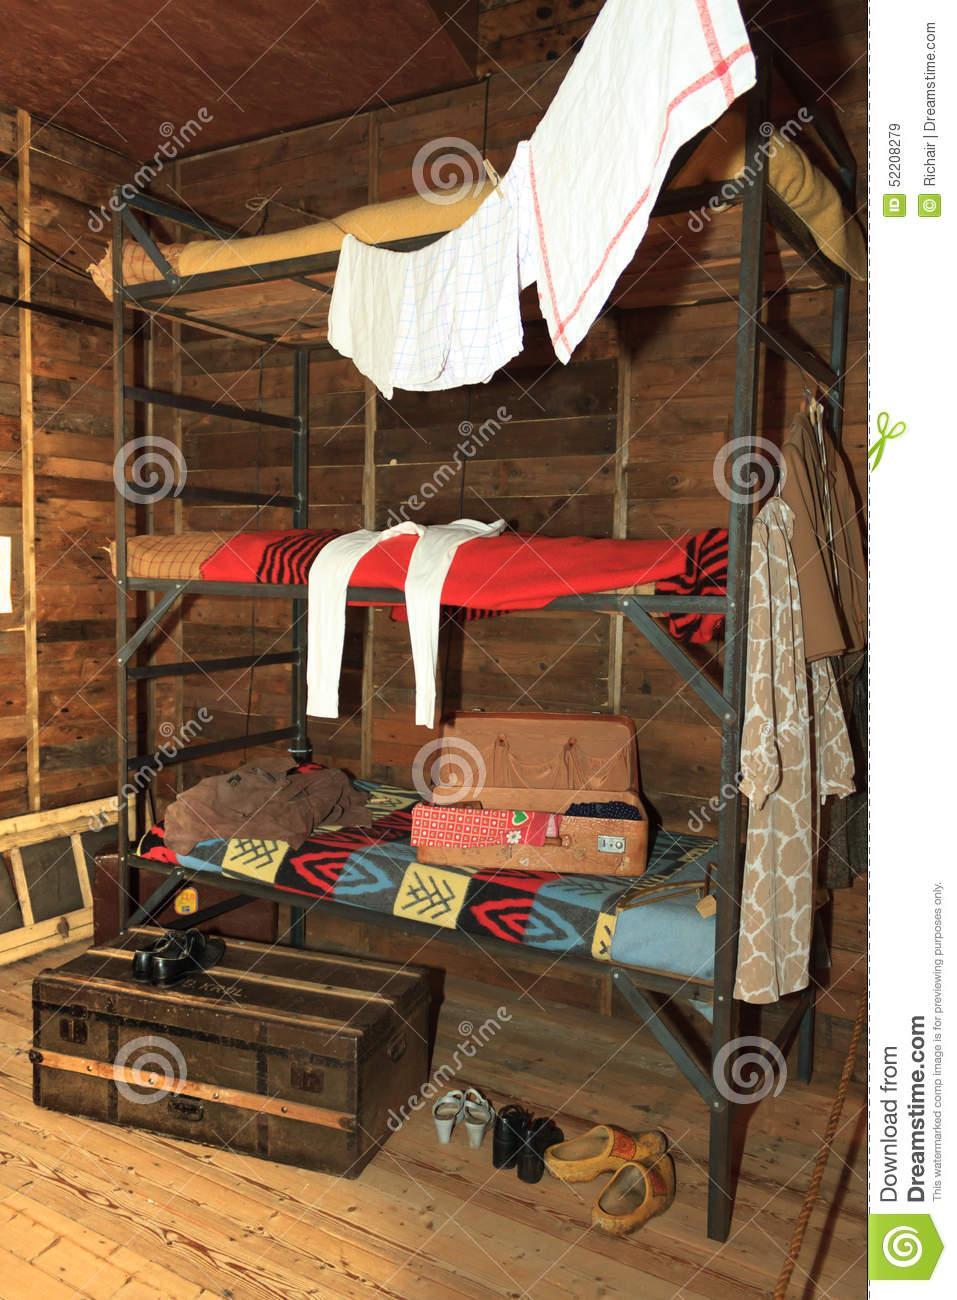 Old Fashioned Bunk Bed Stock Image Image Of Historical 52208279